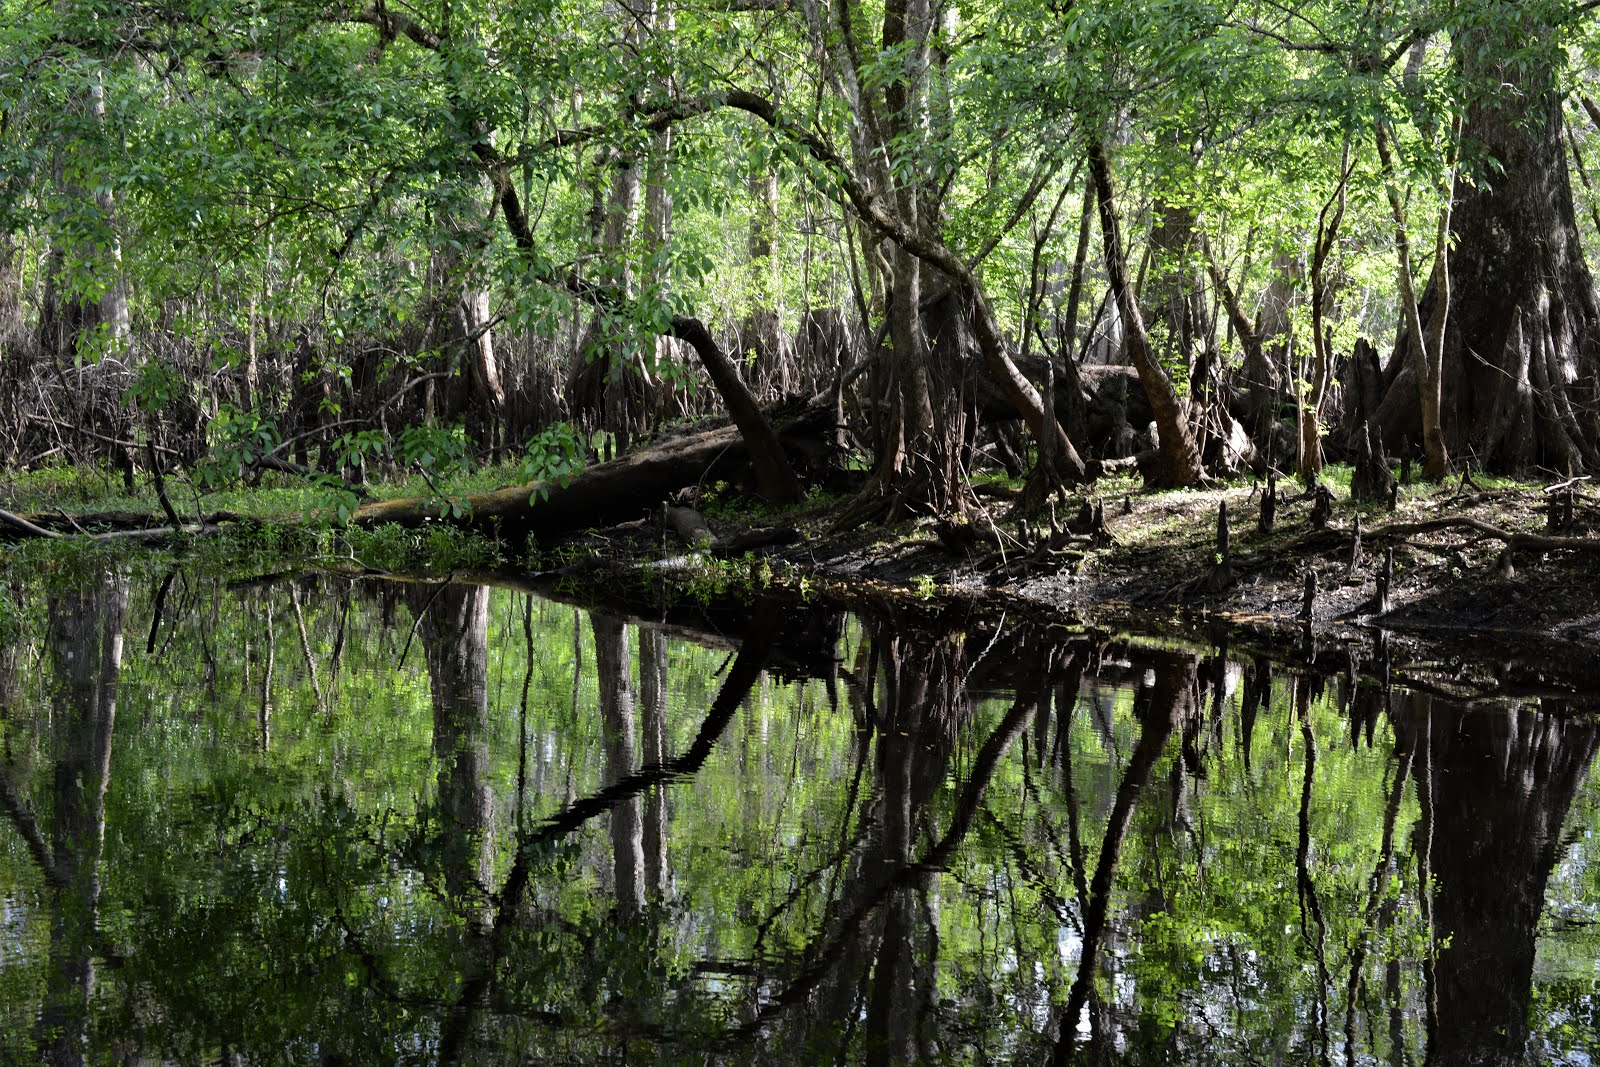 How to write an essay about swamps